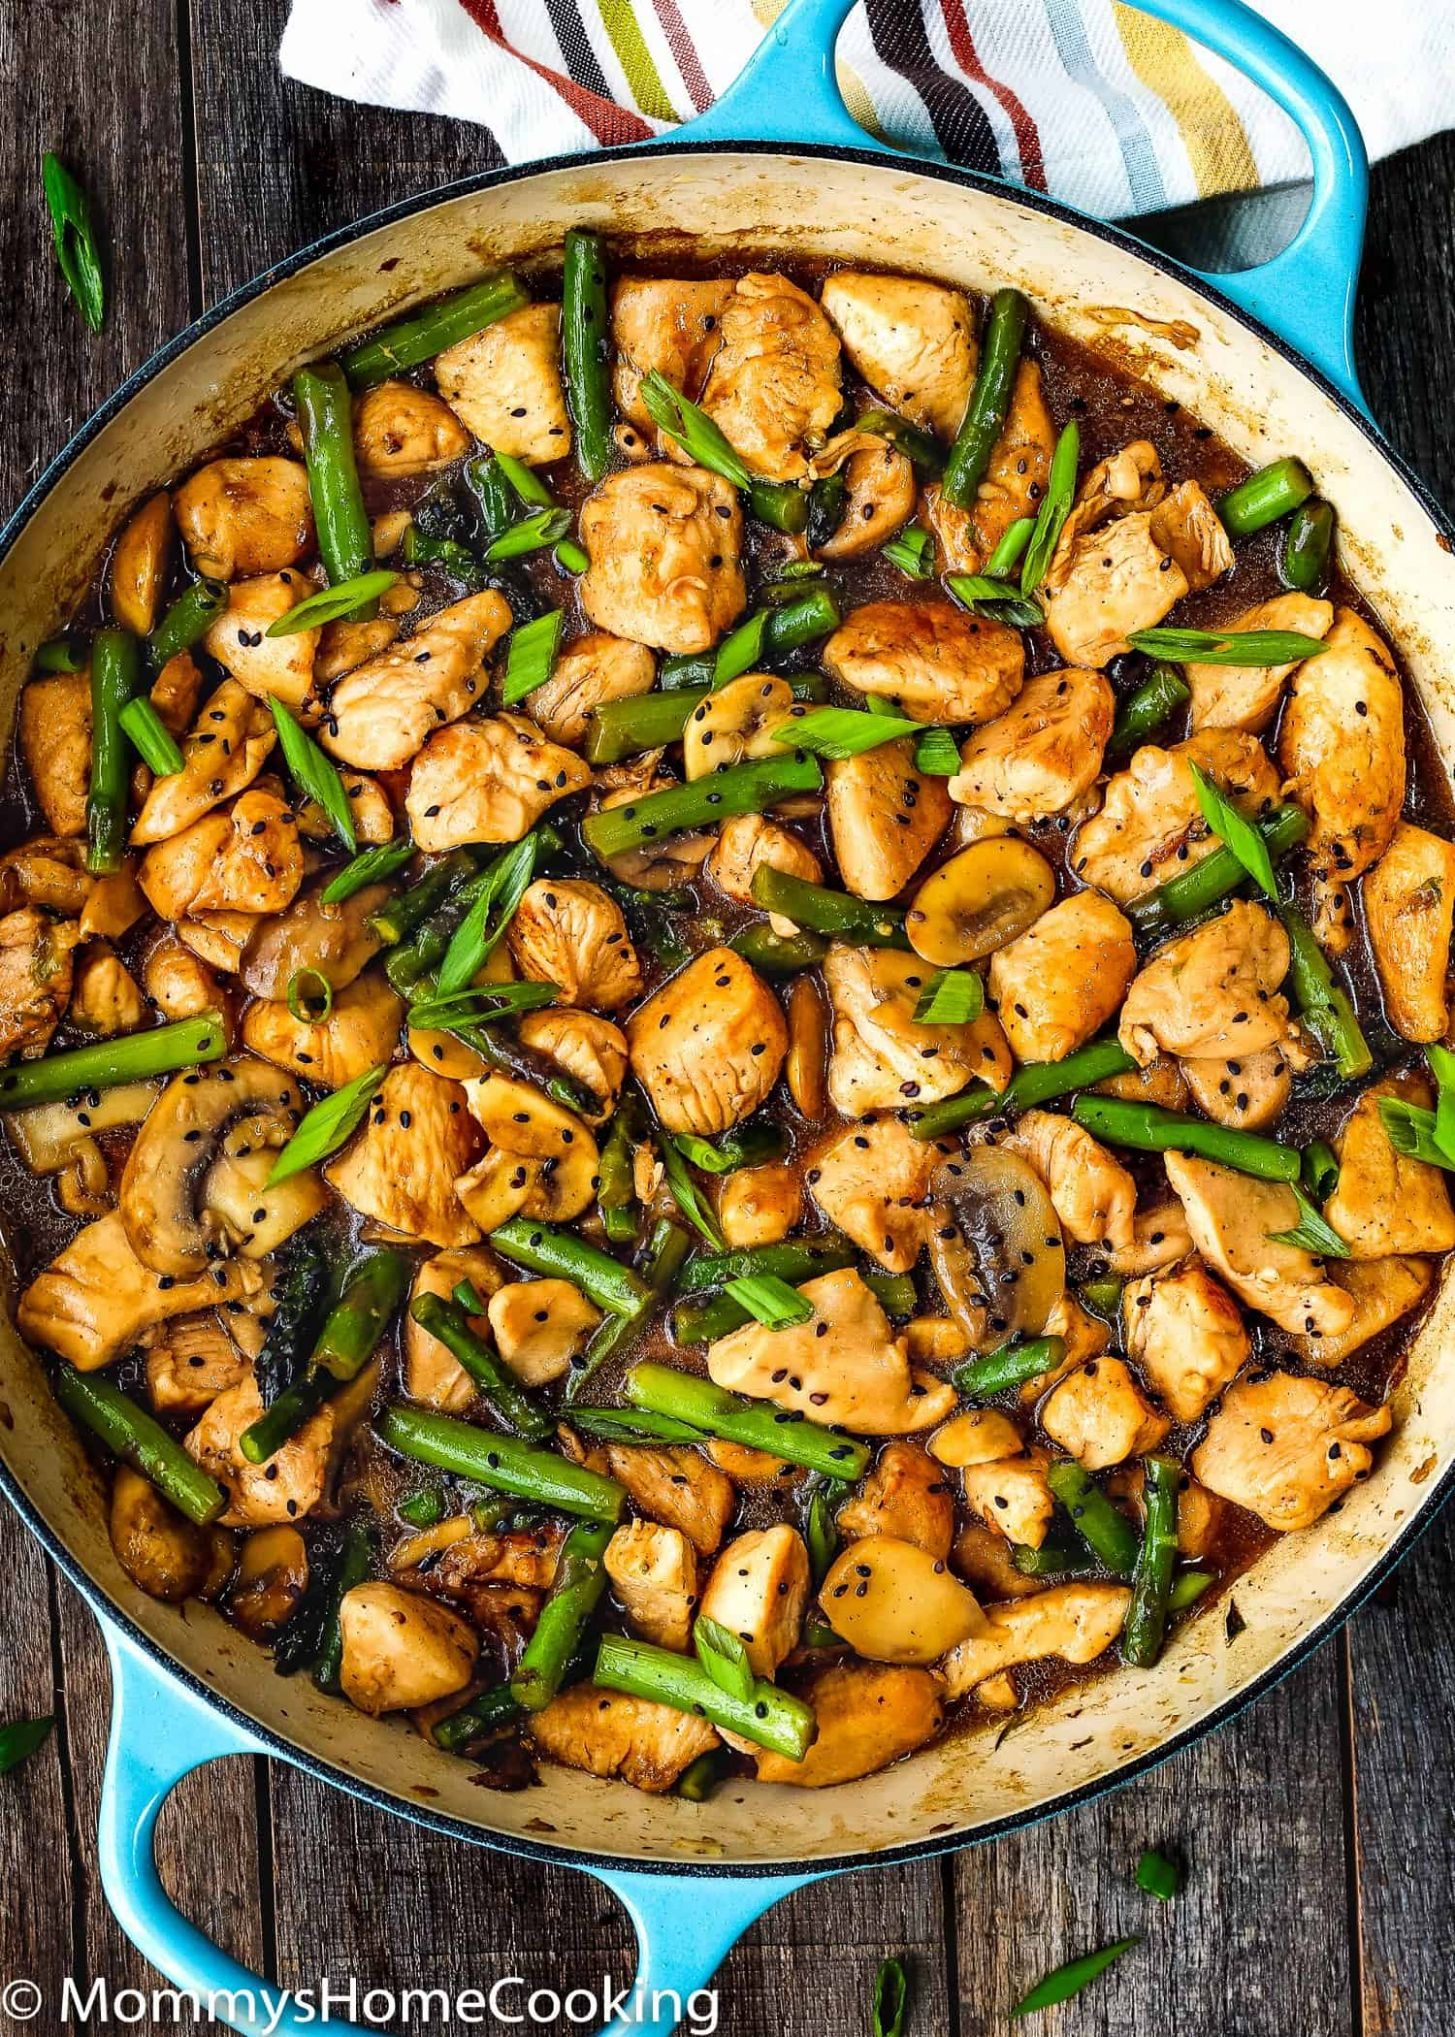 Easy Healthy Chicken and Asparagus Skillet - Healthy Chicken Recipes